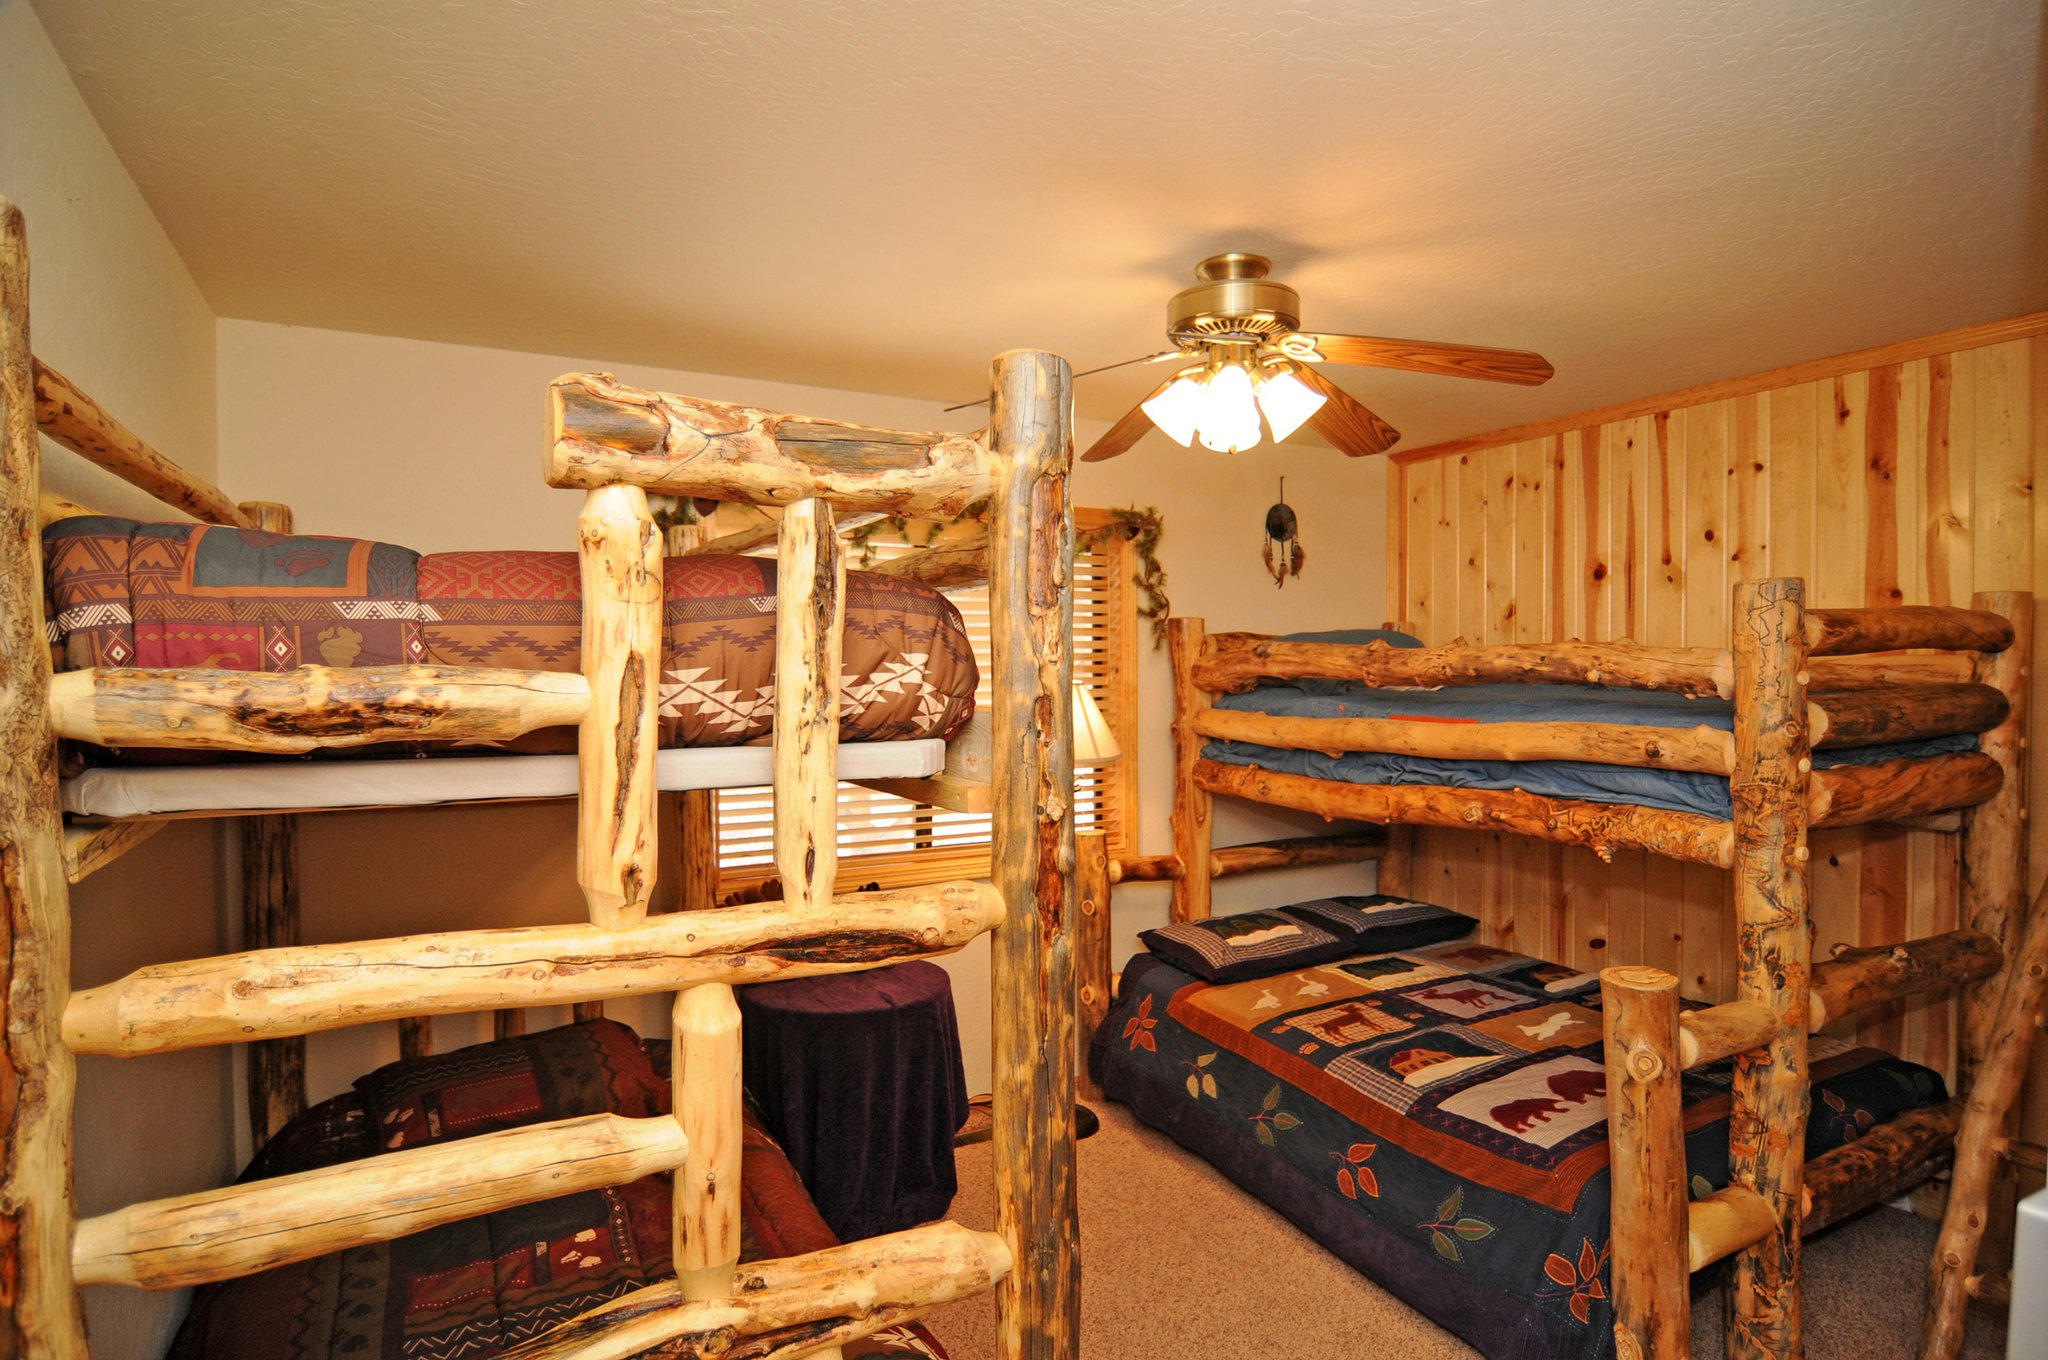 1C0332F6-155D-0010-07D69E8393EE9E6A-743 Butte-22-Bunk Beds Bedroom- resize 1.jpg